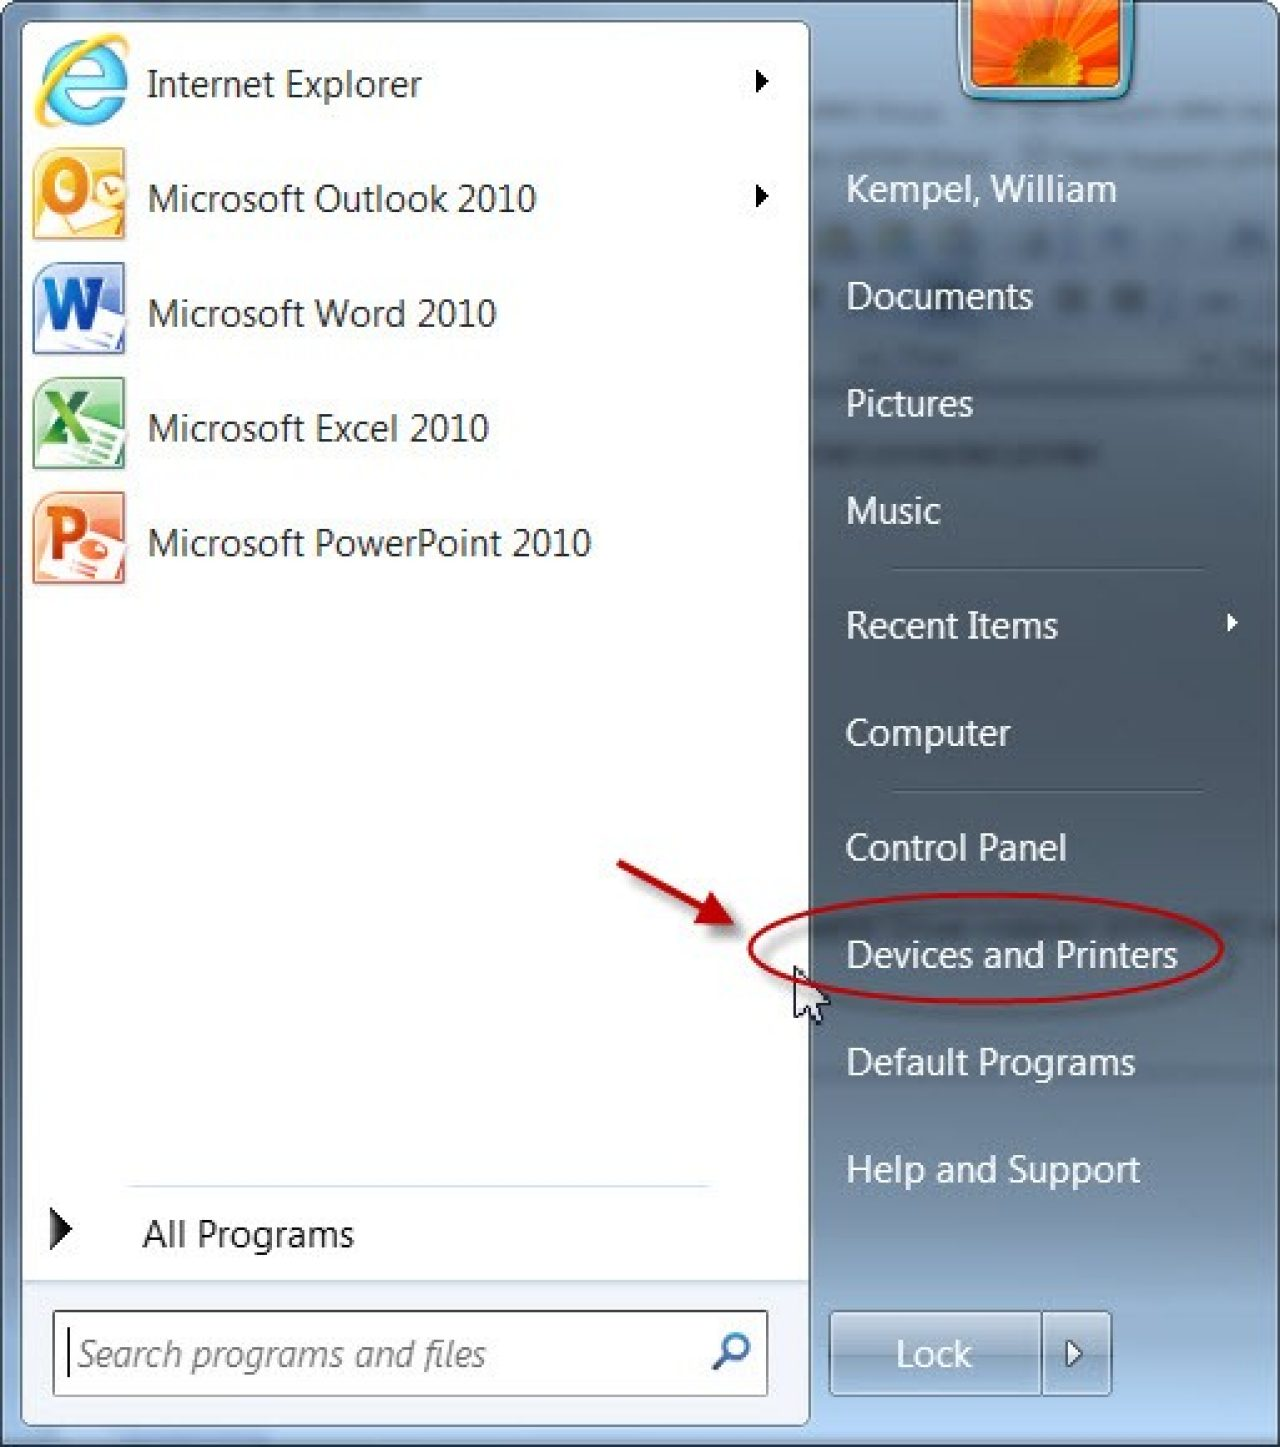 Select Devices and Printers screen capture